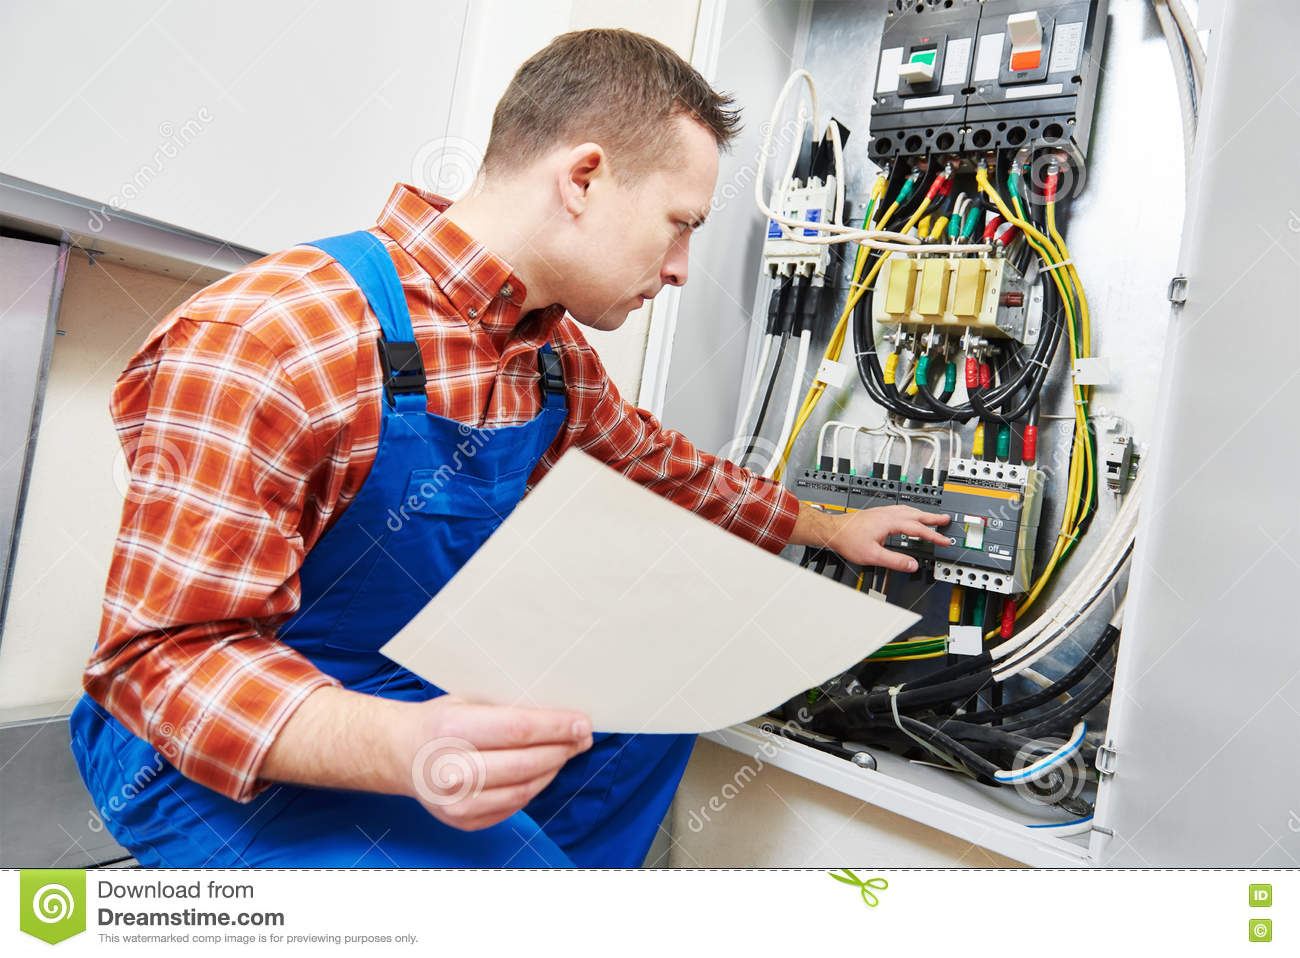 electrician hand test voltage screwdriver electric checking switching electric actuator equipment fuse box 82177868 electrician hand with test voltage screwdriver stock photo image how to test voltage at fuse box at eliteediting.co